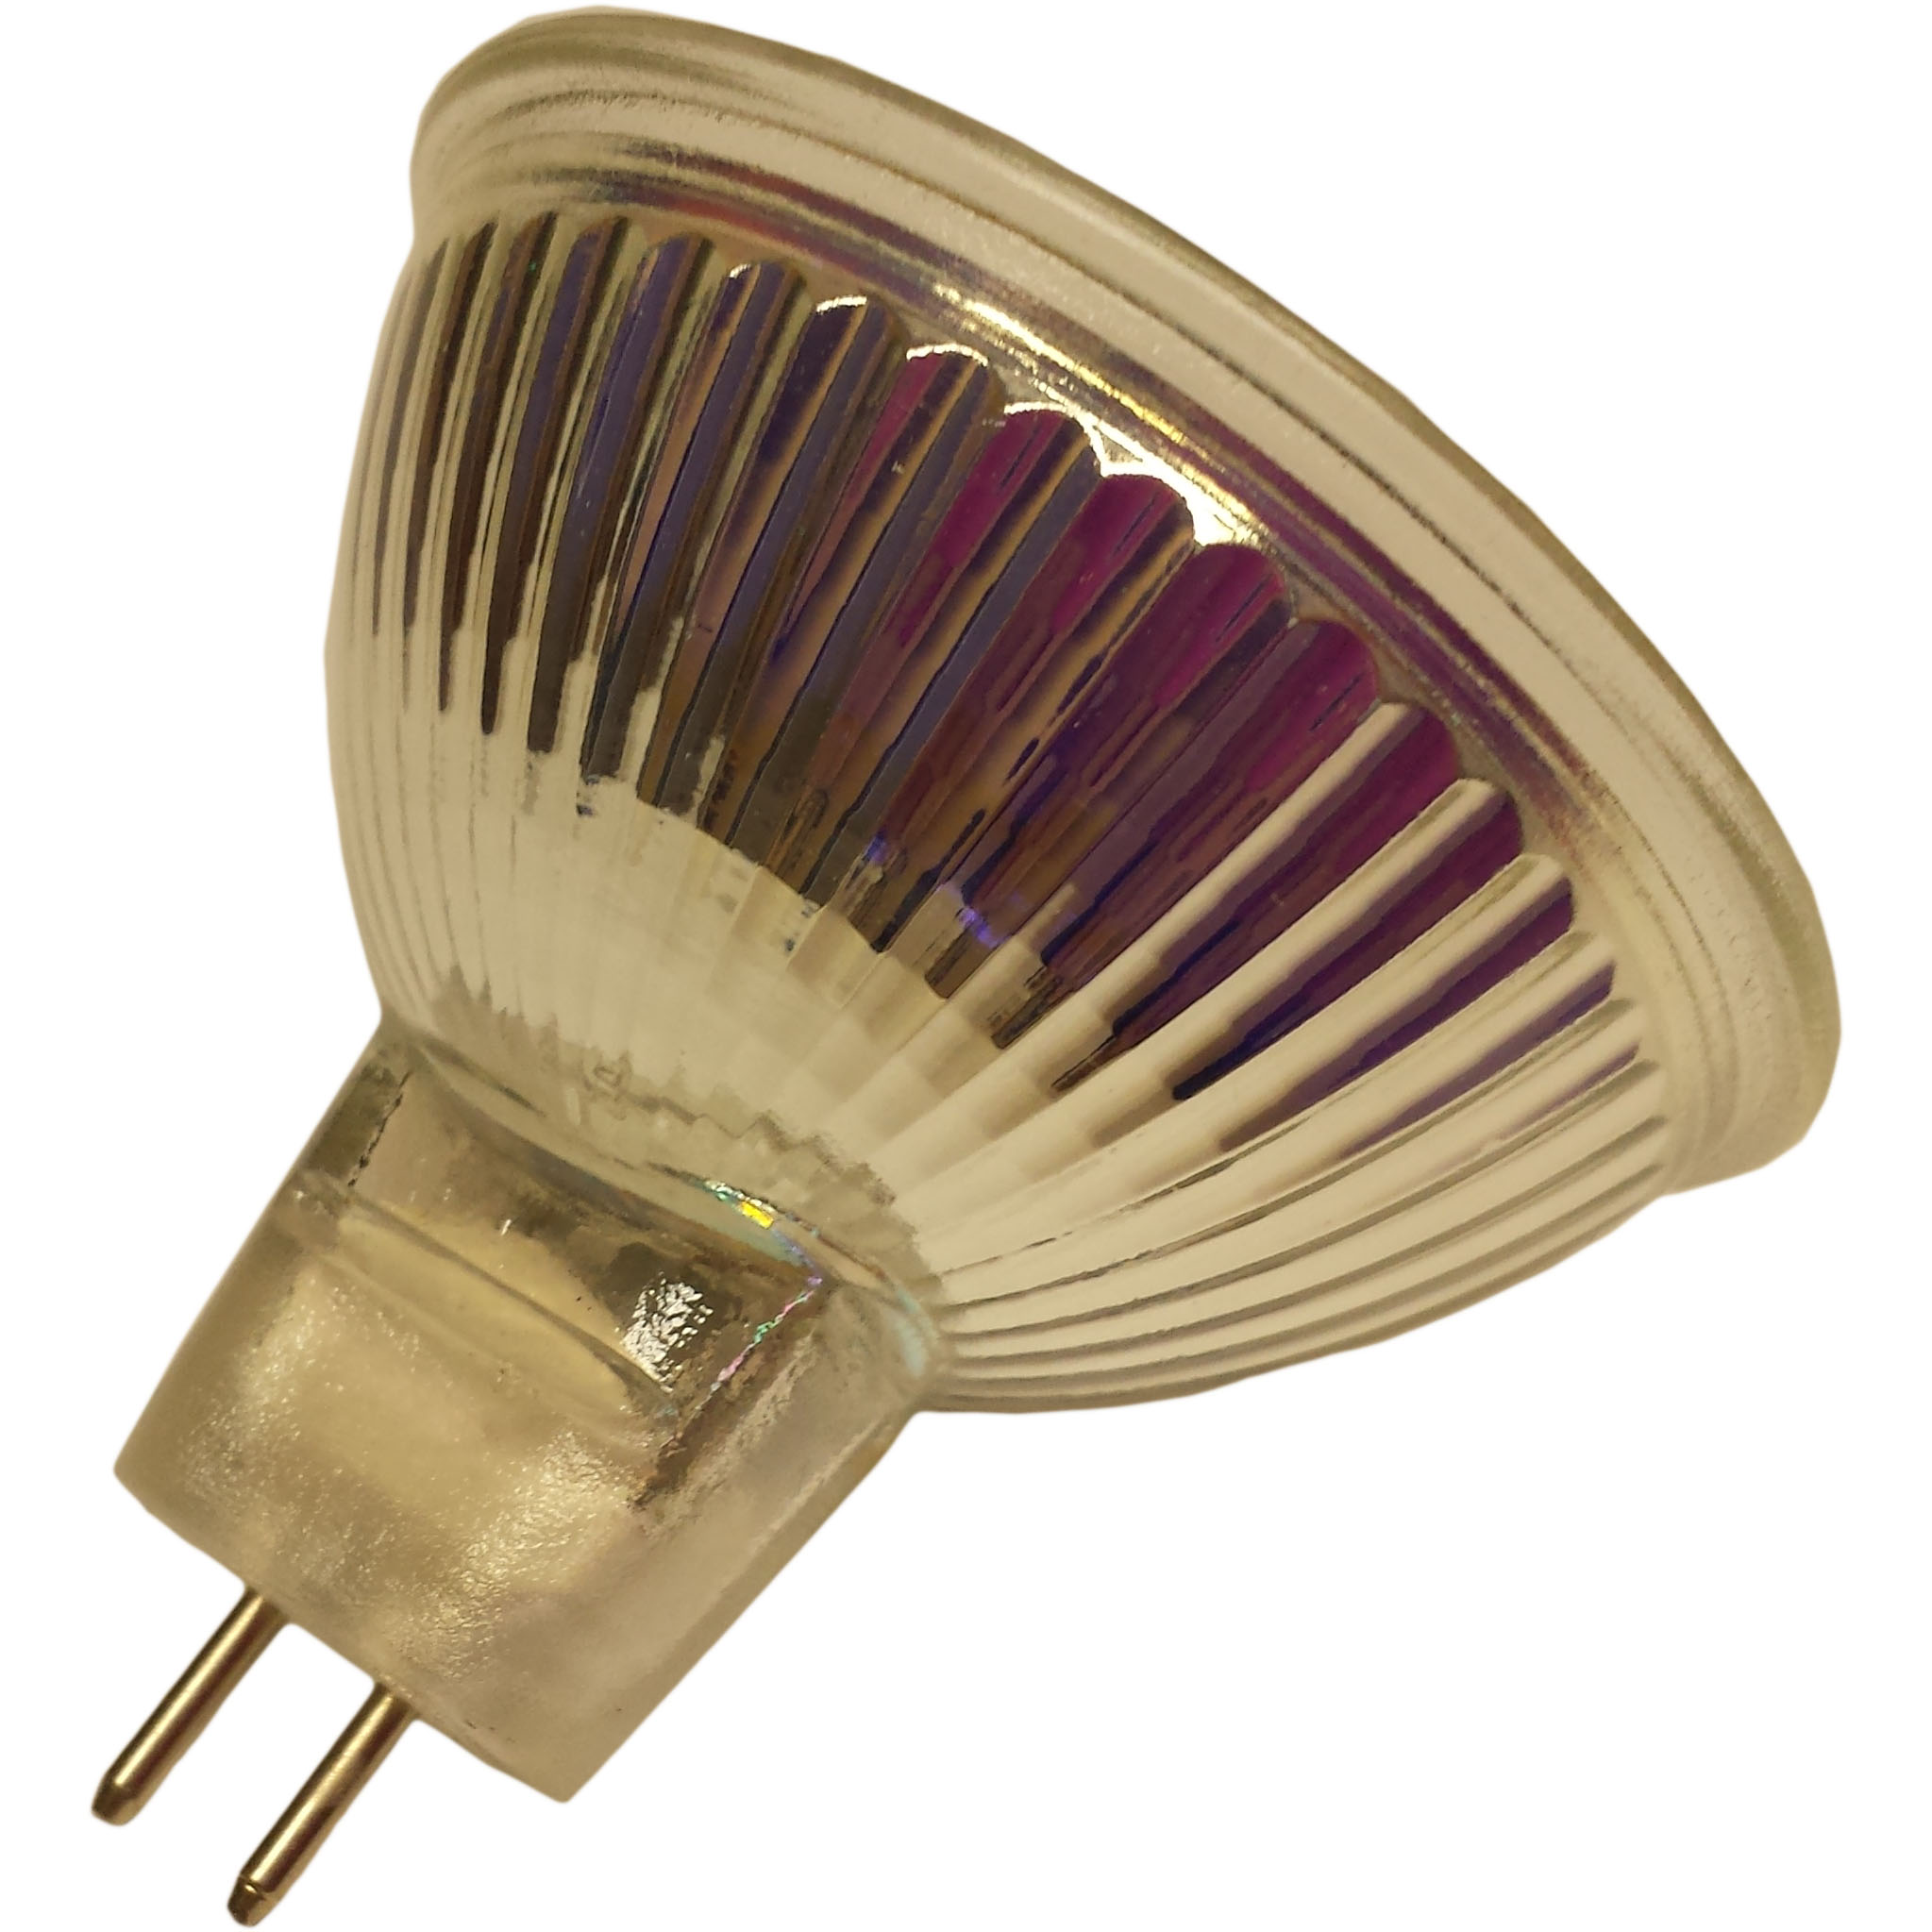 Light Bulb BO-22 - BO-22